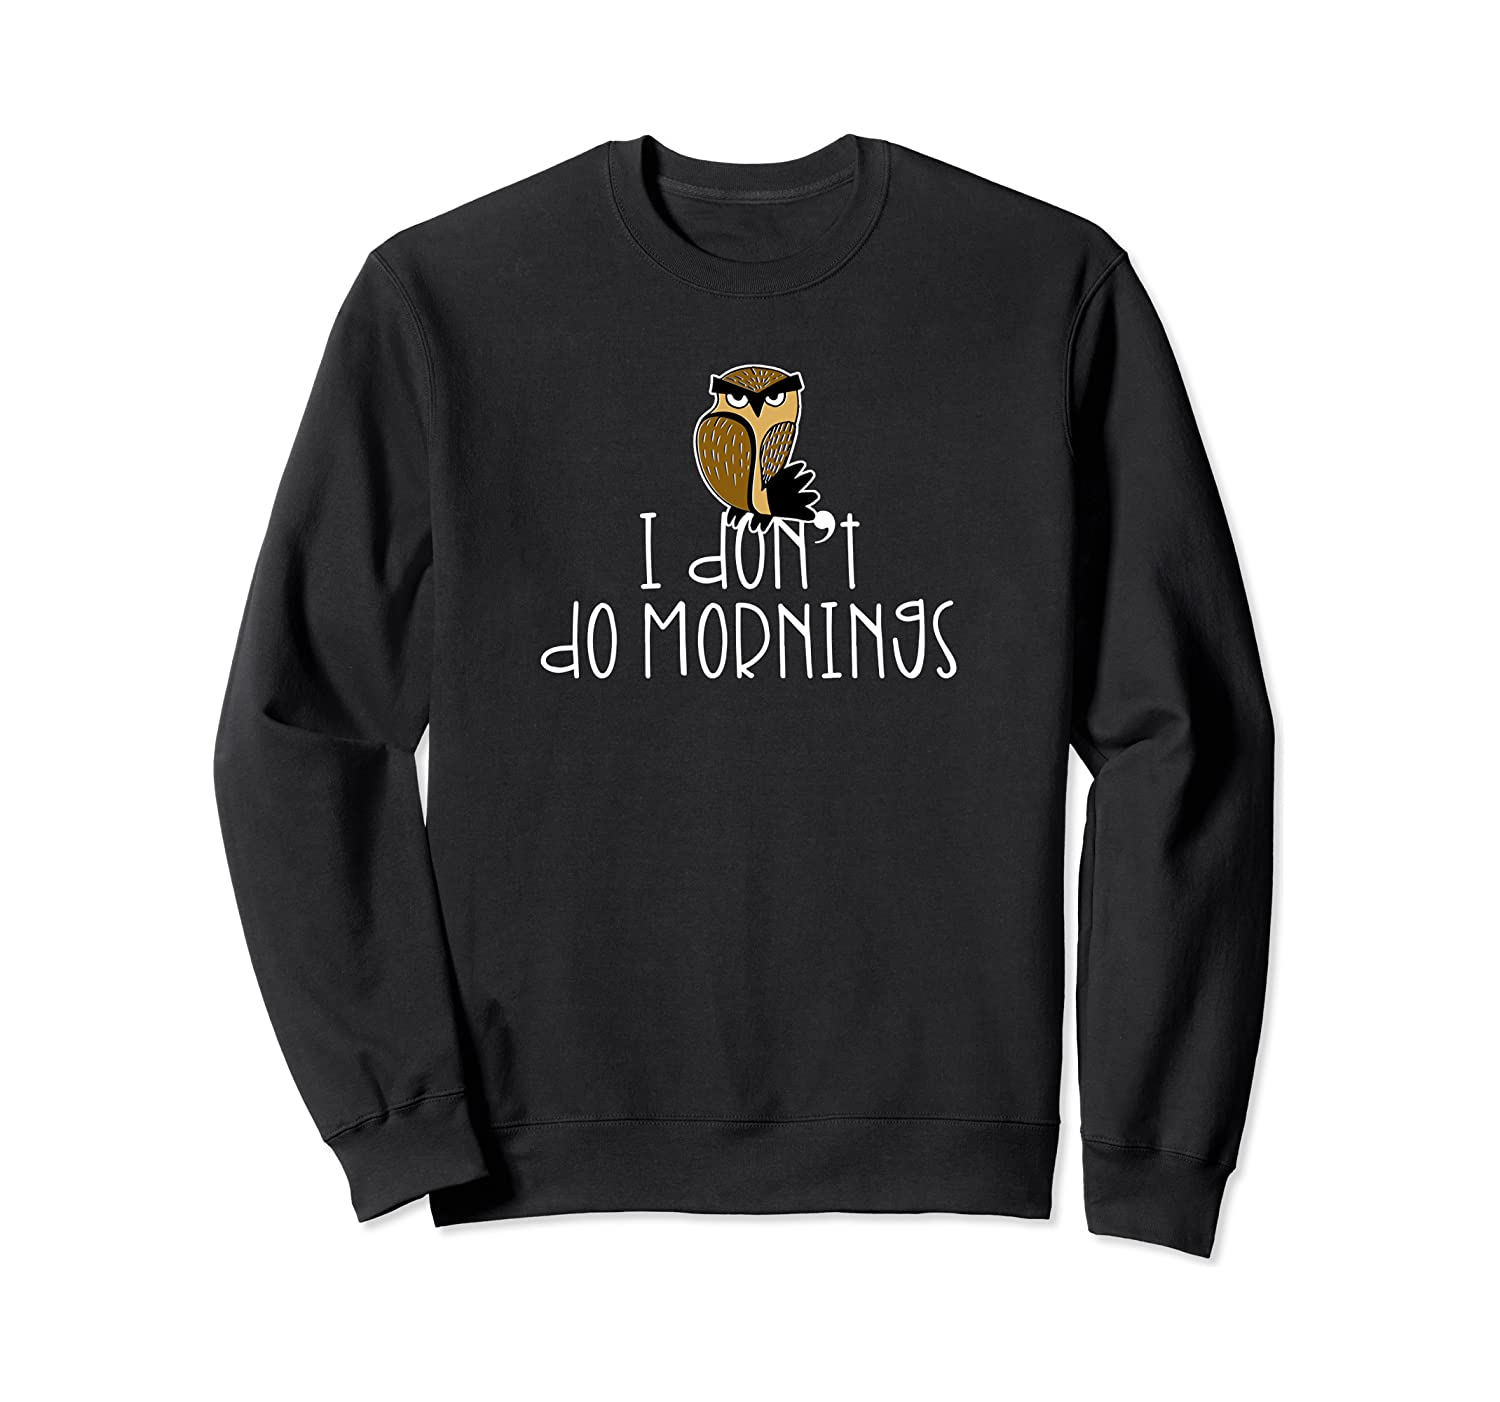 Cranky Owl I Don't Do Mornings Sweatshirt